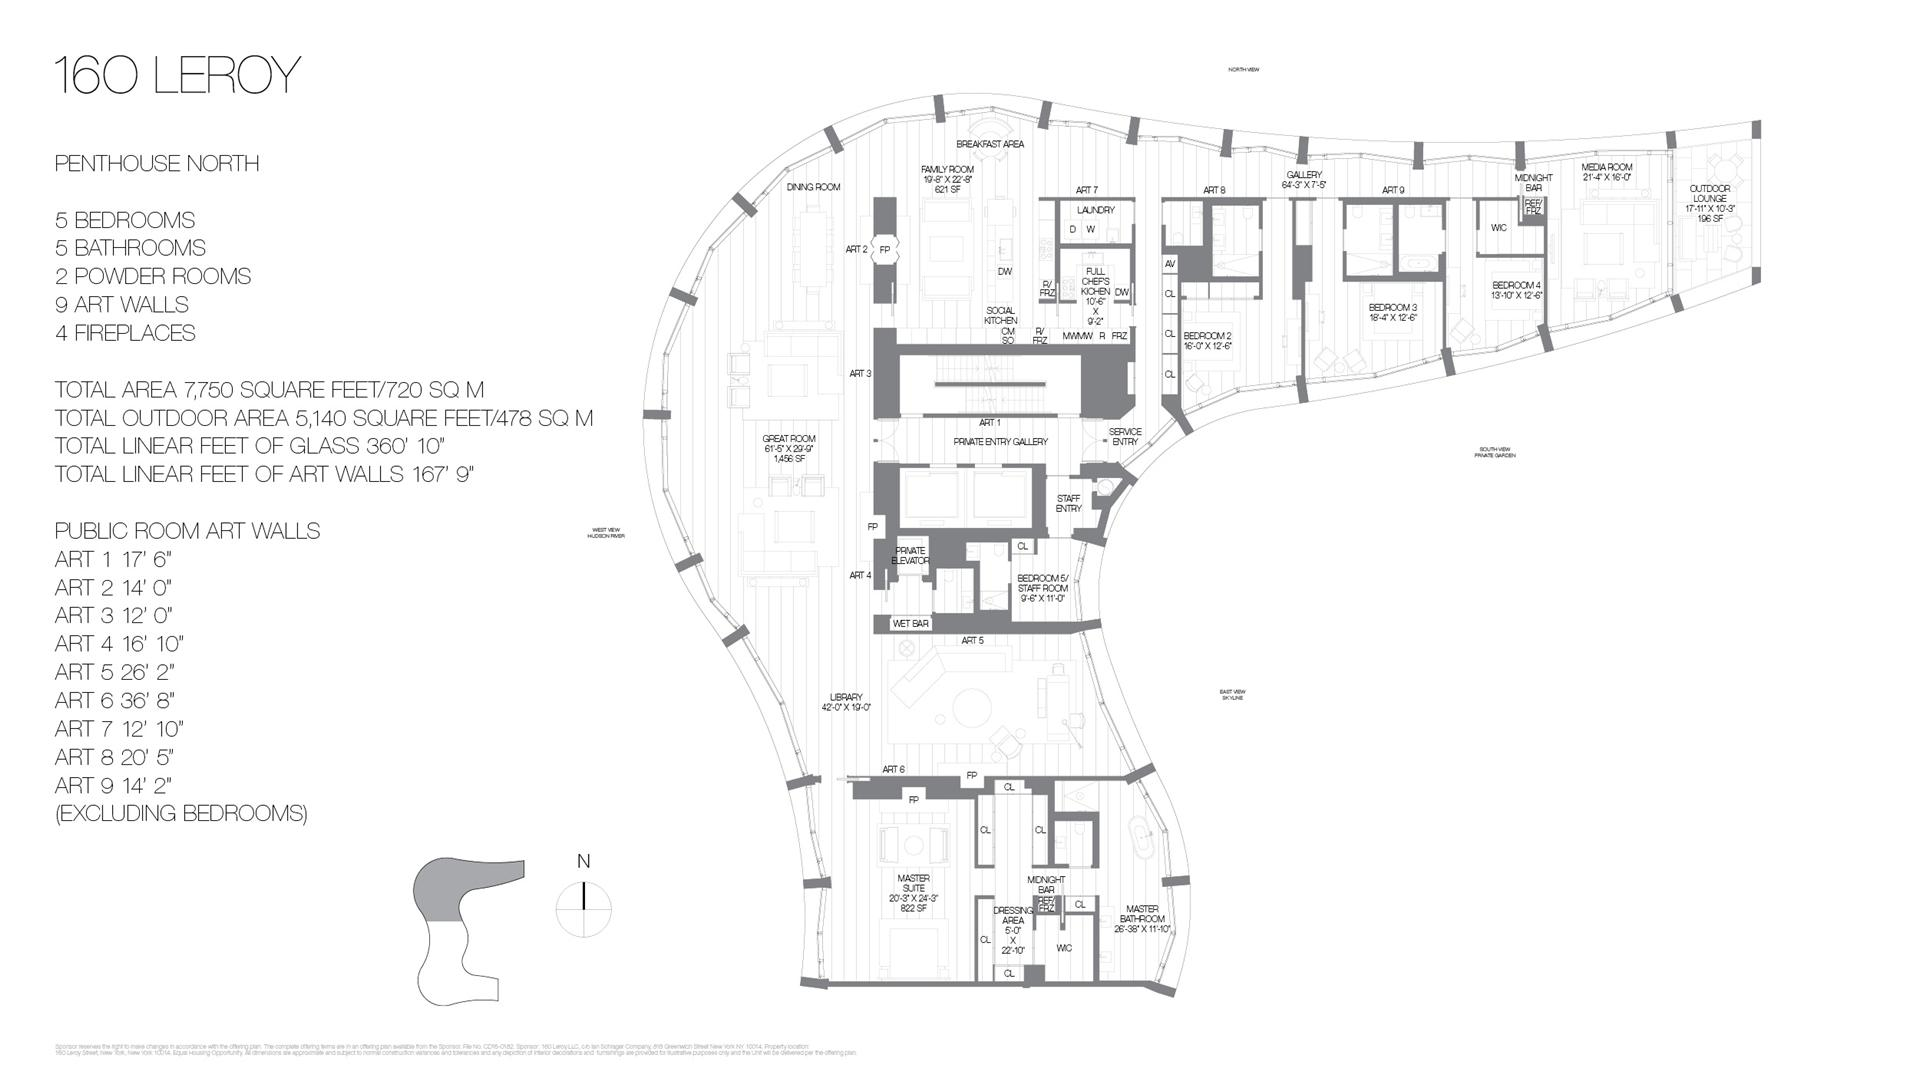 Floor plan of 160 Leroy St, PHNORTH - West Village - Meatpacking District, New York